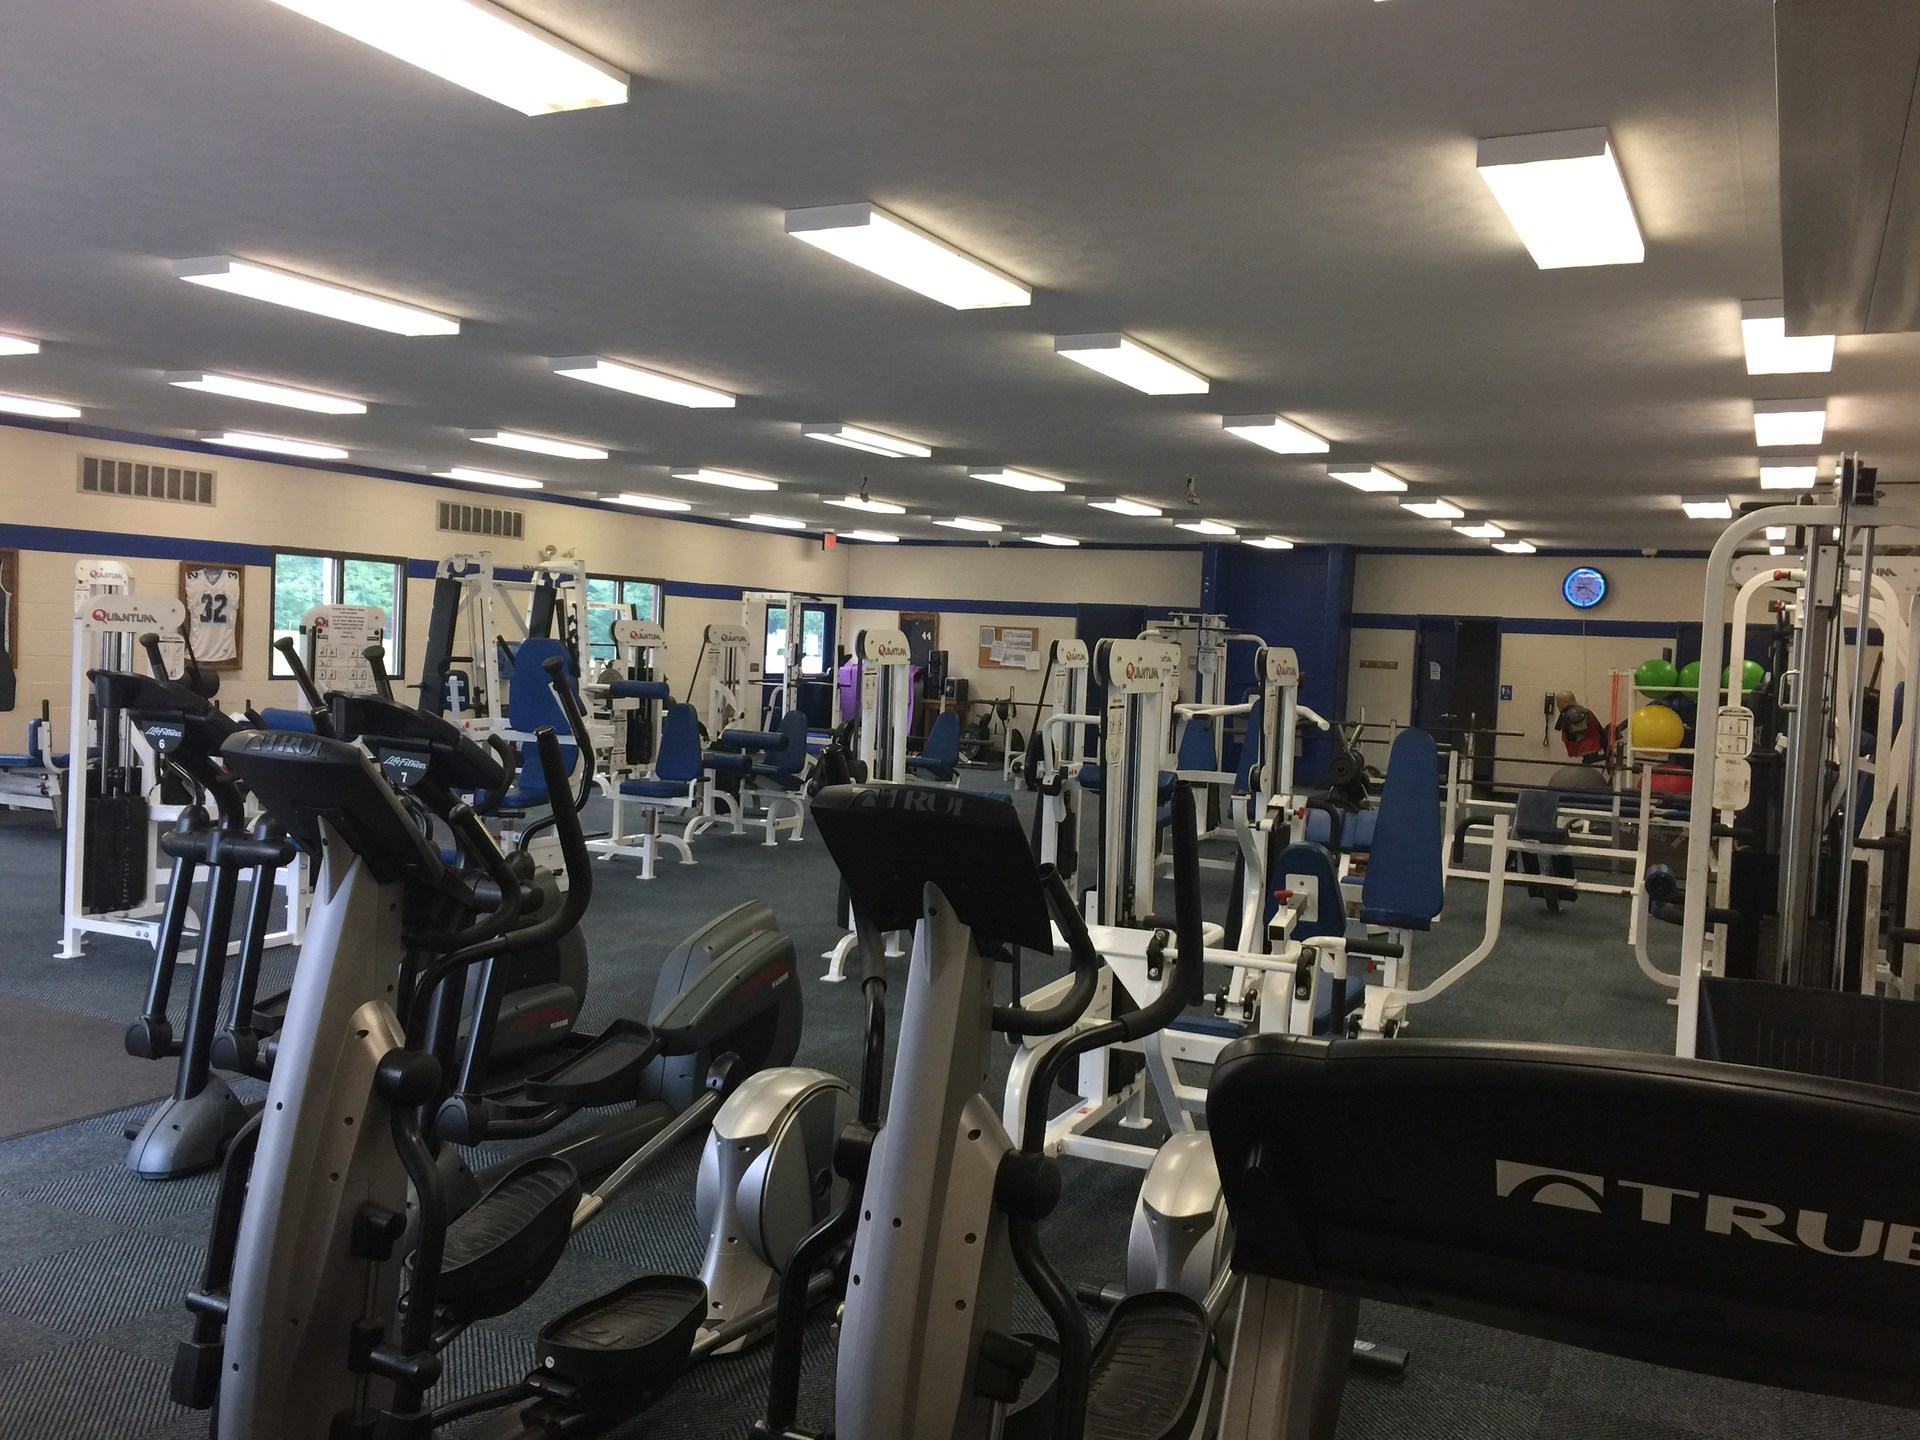 Fitness Center Equipment